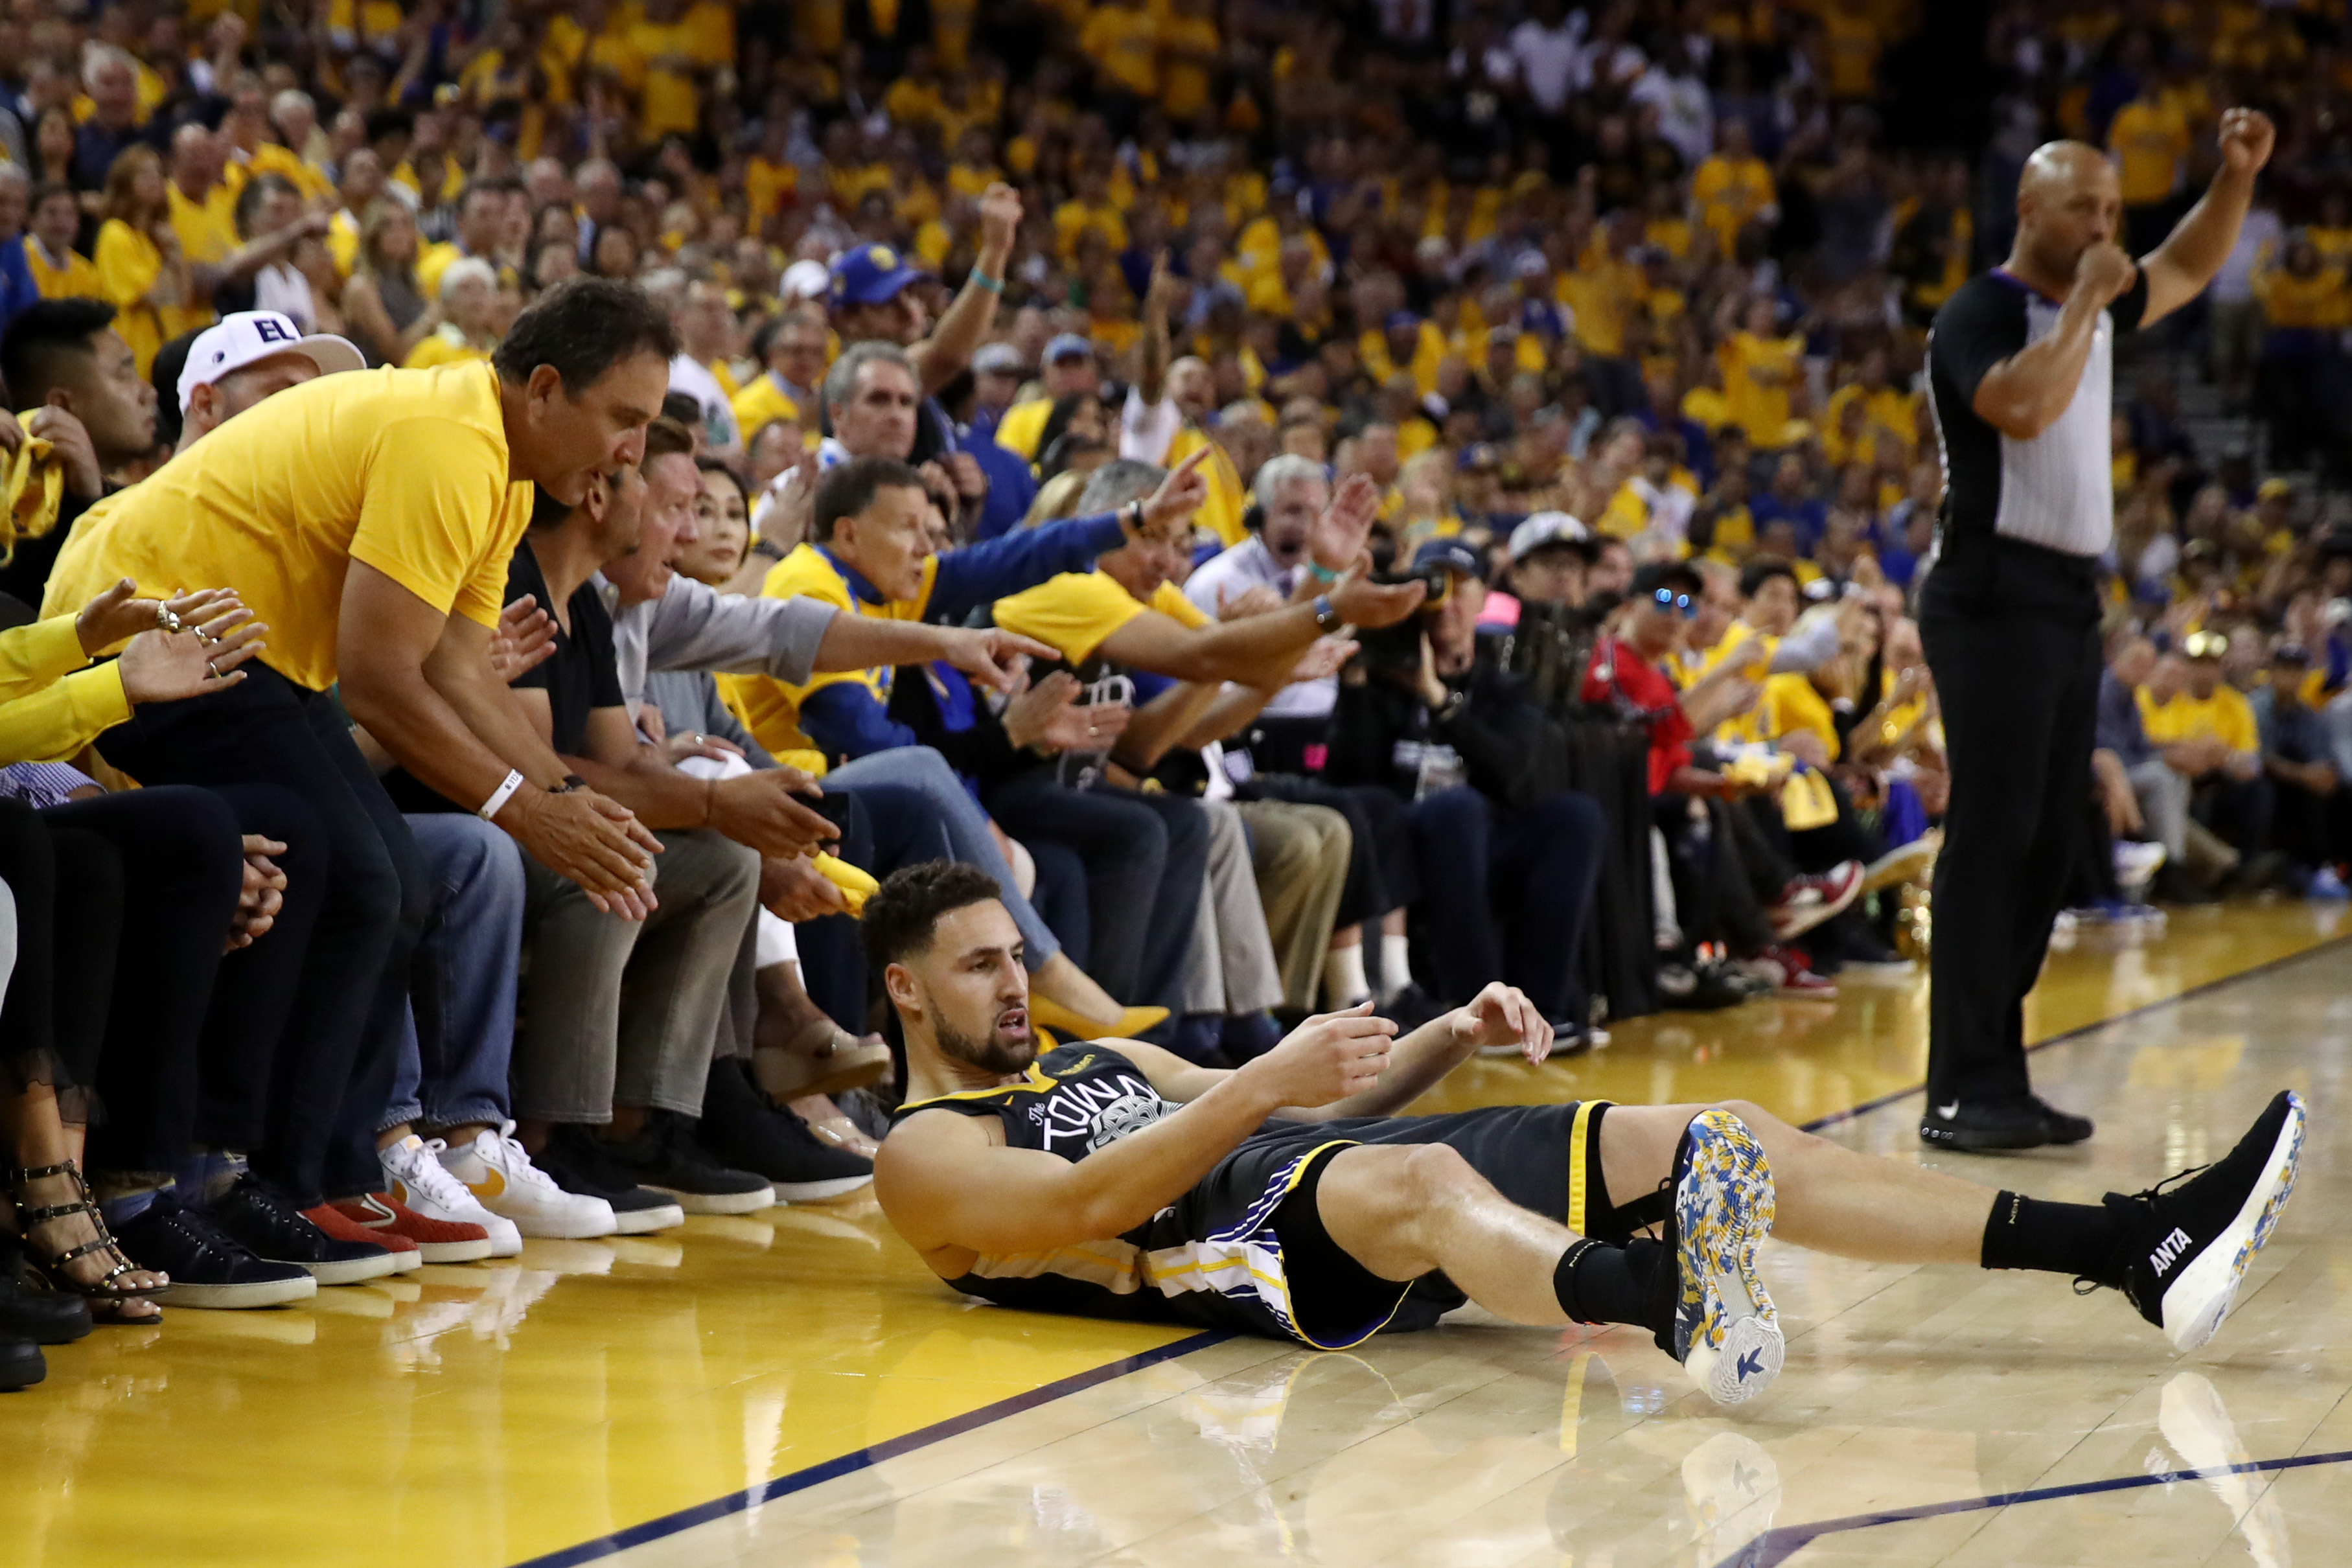 Klay Thompson of the Warriors slides across the court during Game 6 of the 2019 NBA Finals